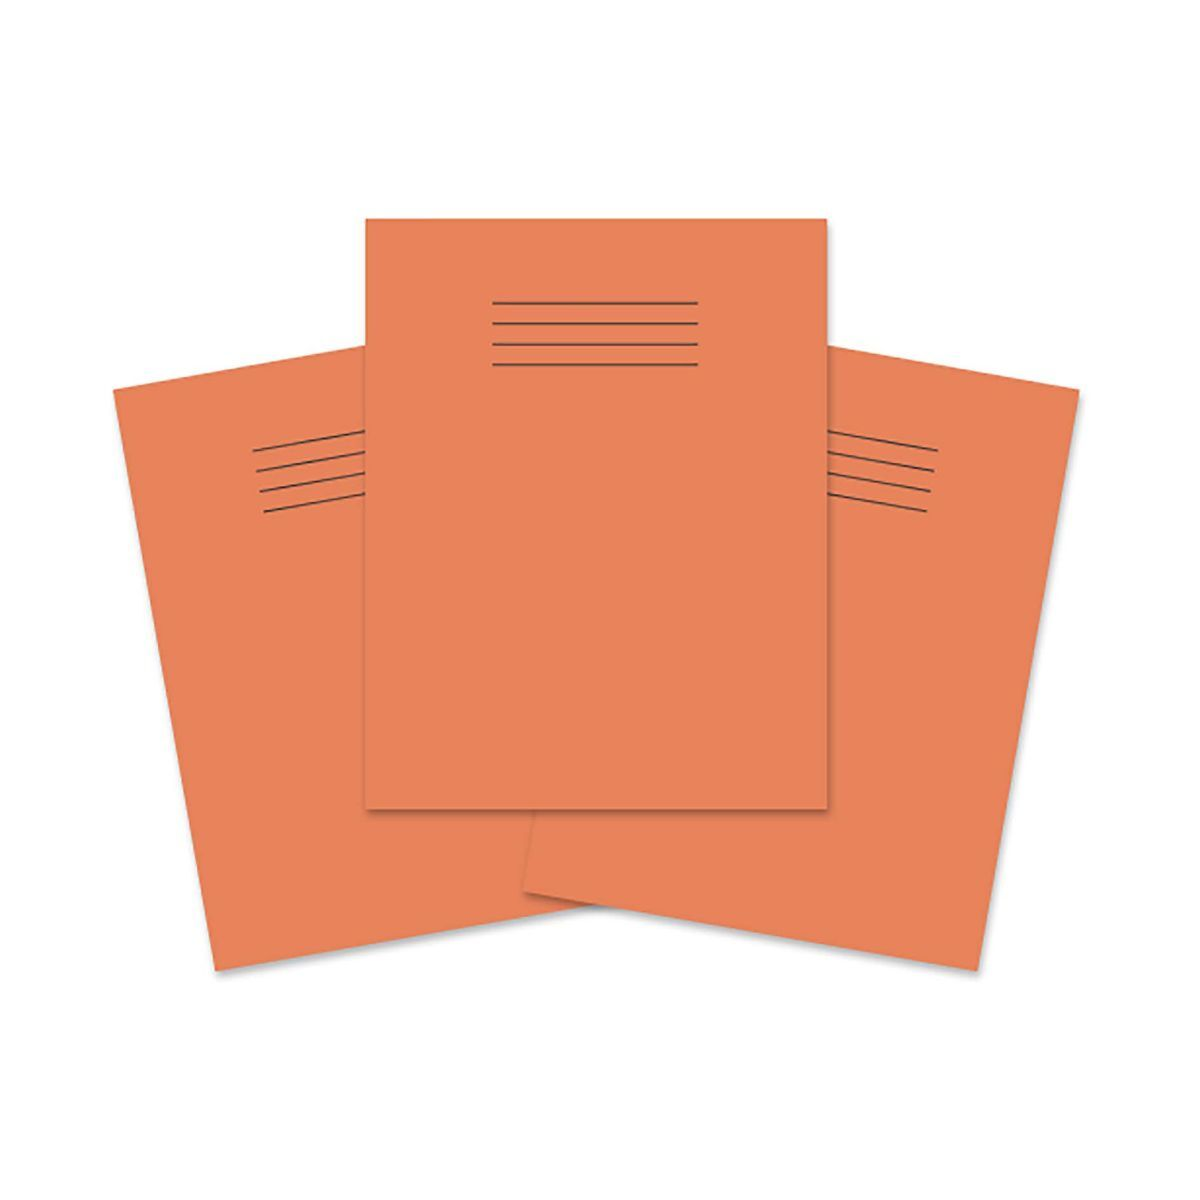 Rhino Exercise Book 9 inch x 7 Inch 80 Pages 5mm Squares Pack of 100 Orange